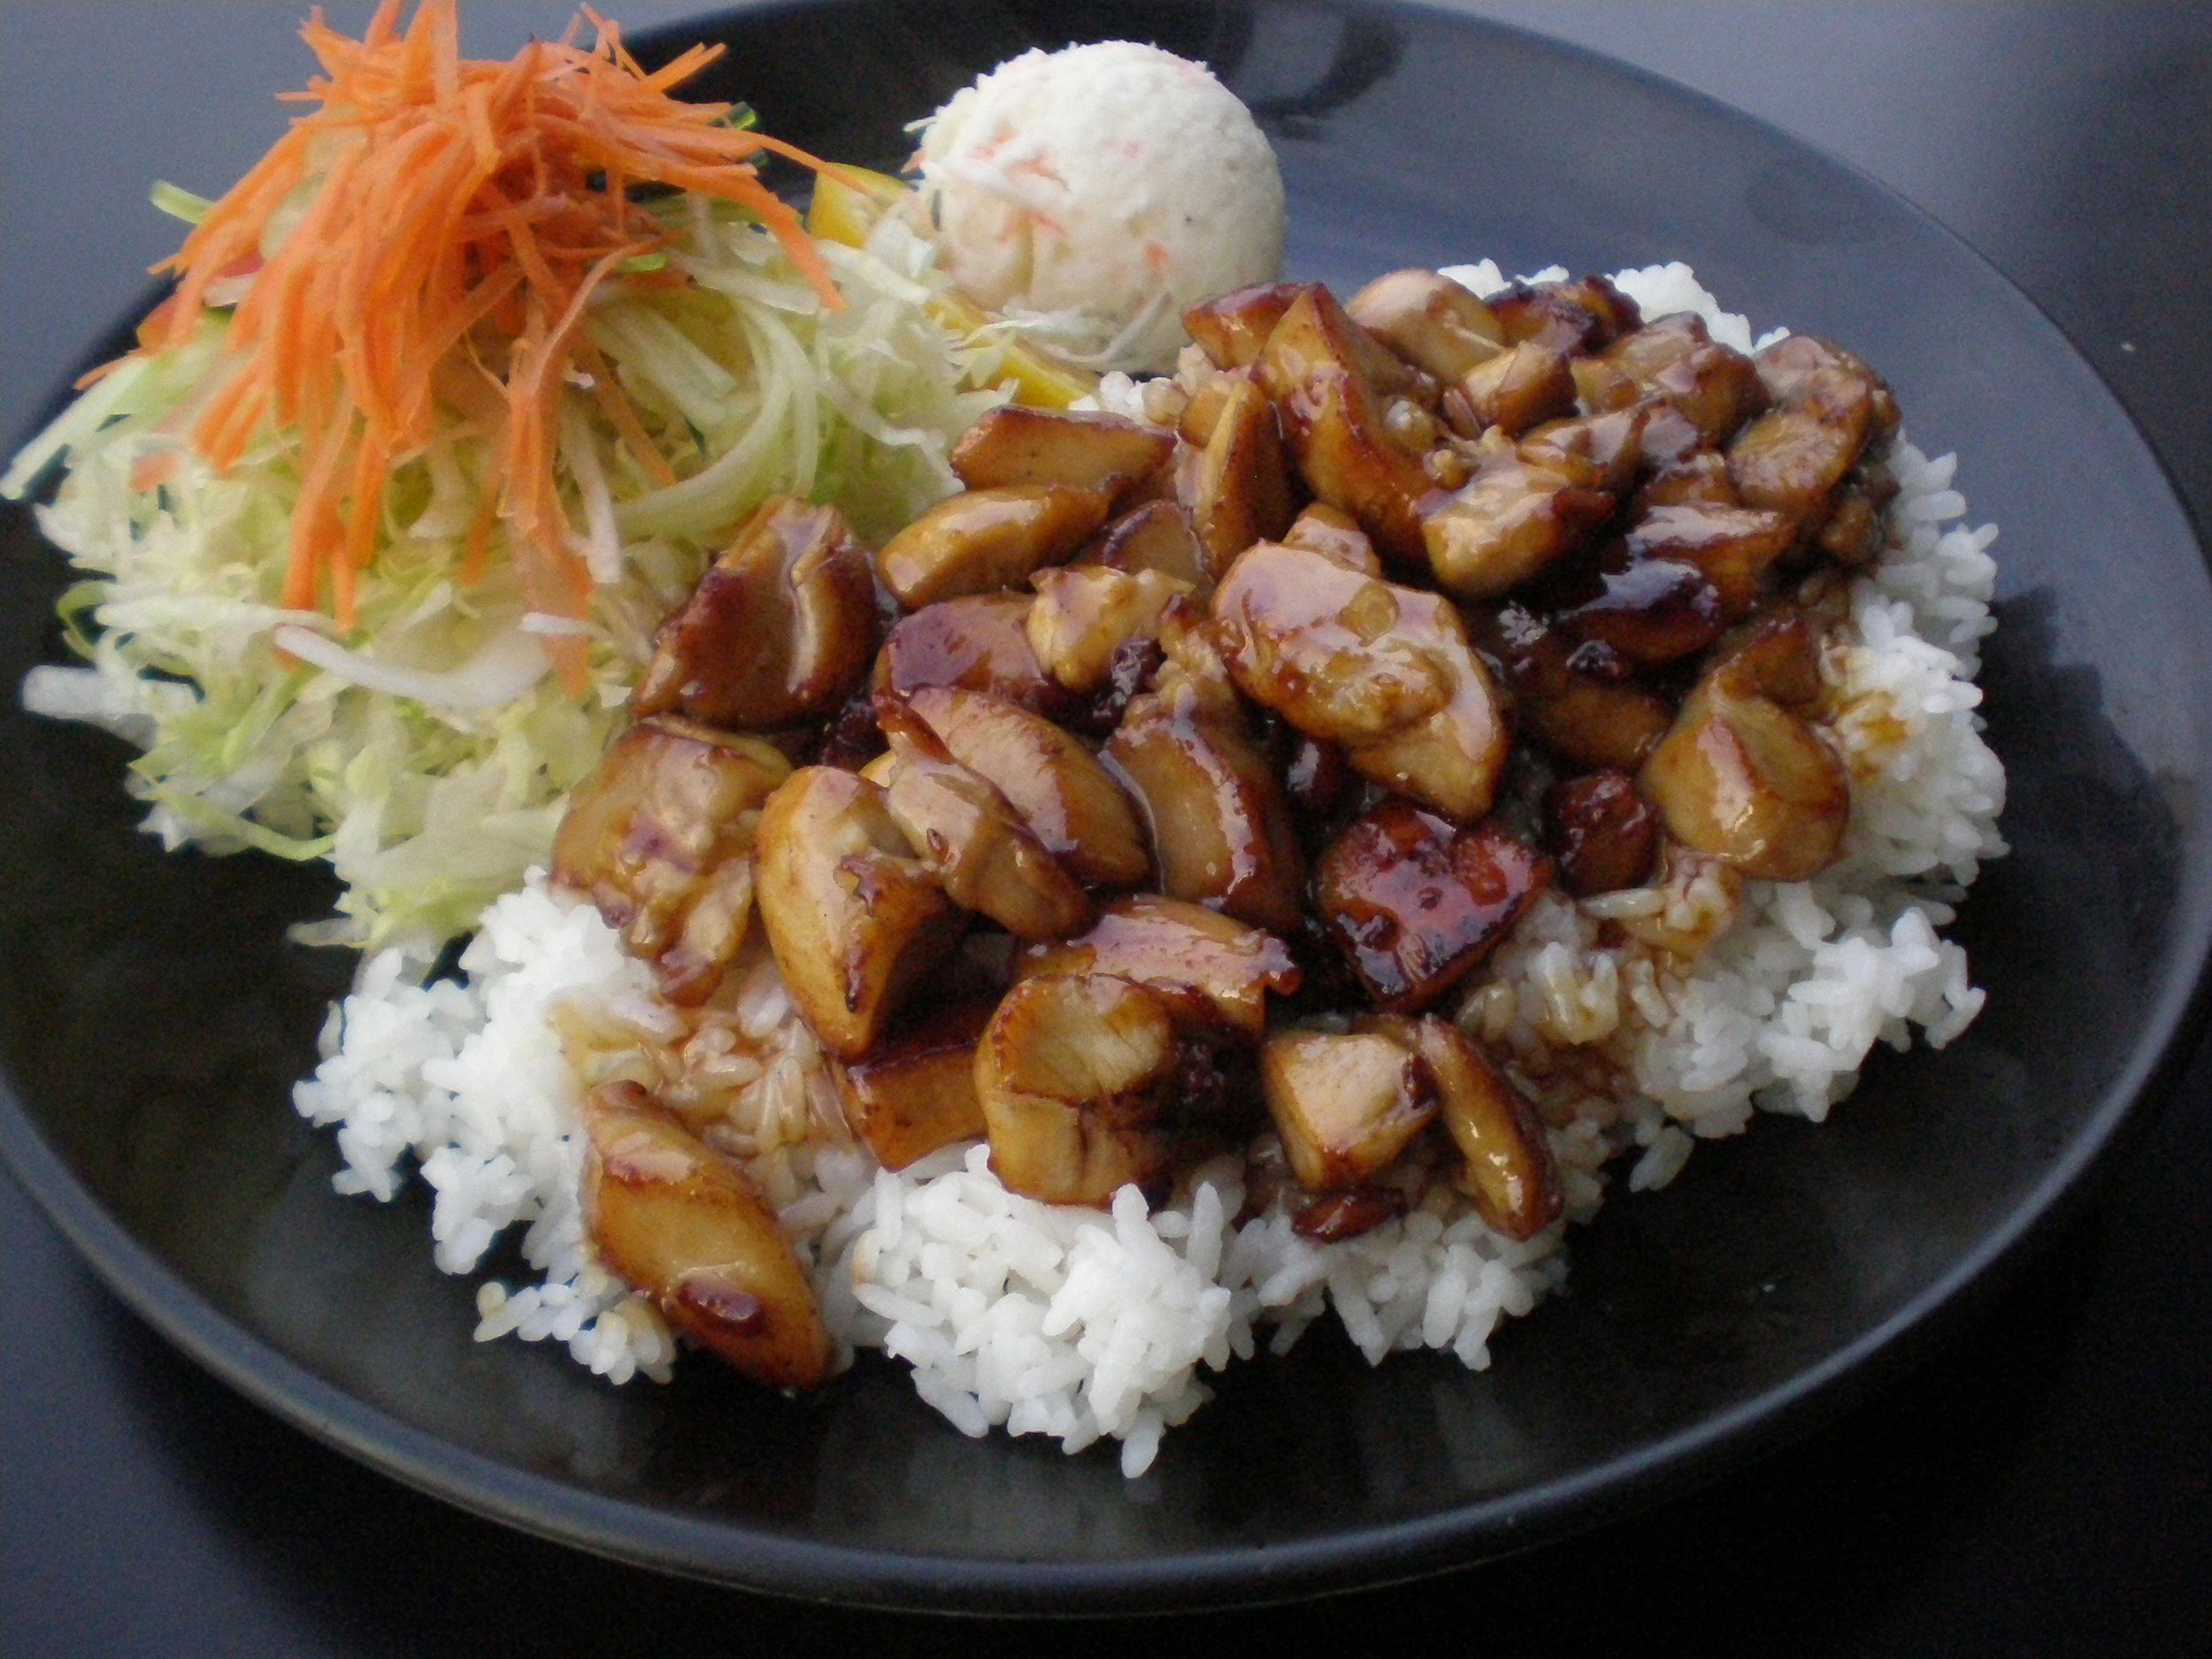 Teriyaki with Greens, Potato Salad and Rice